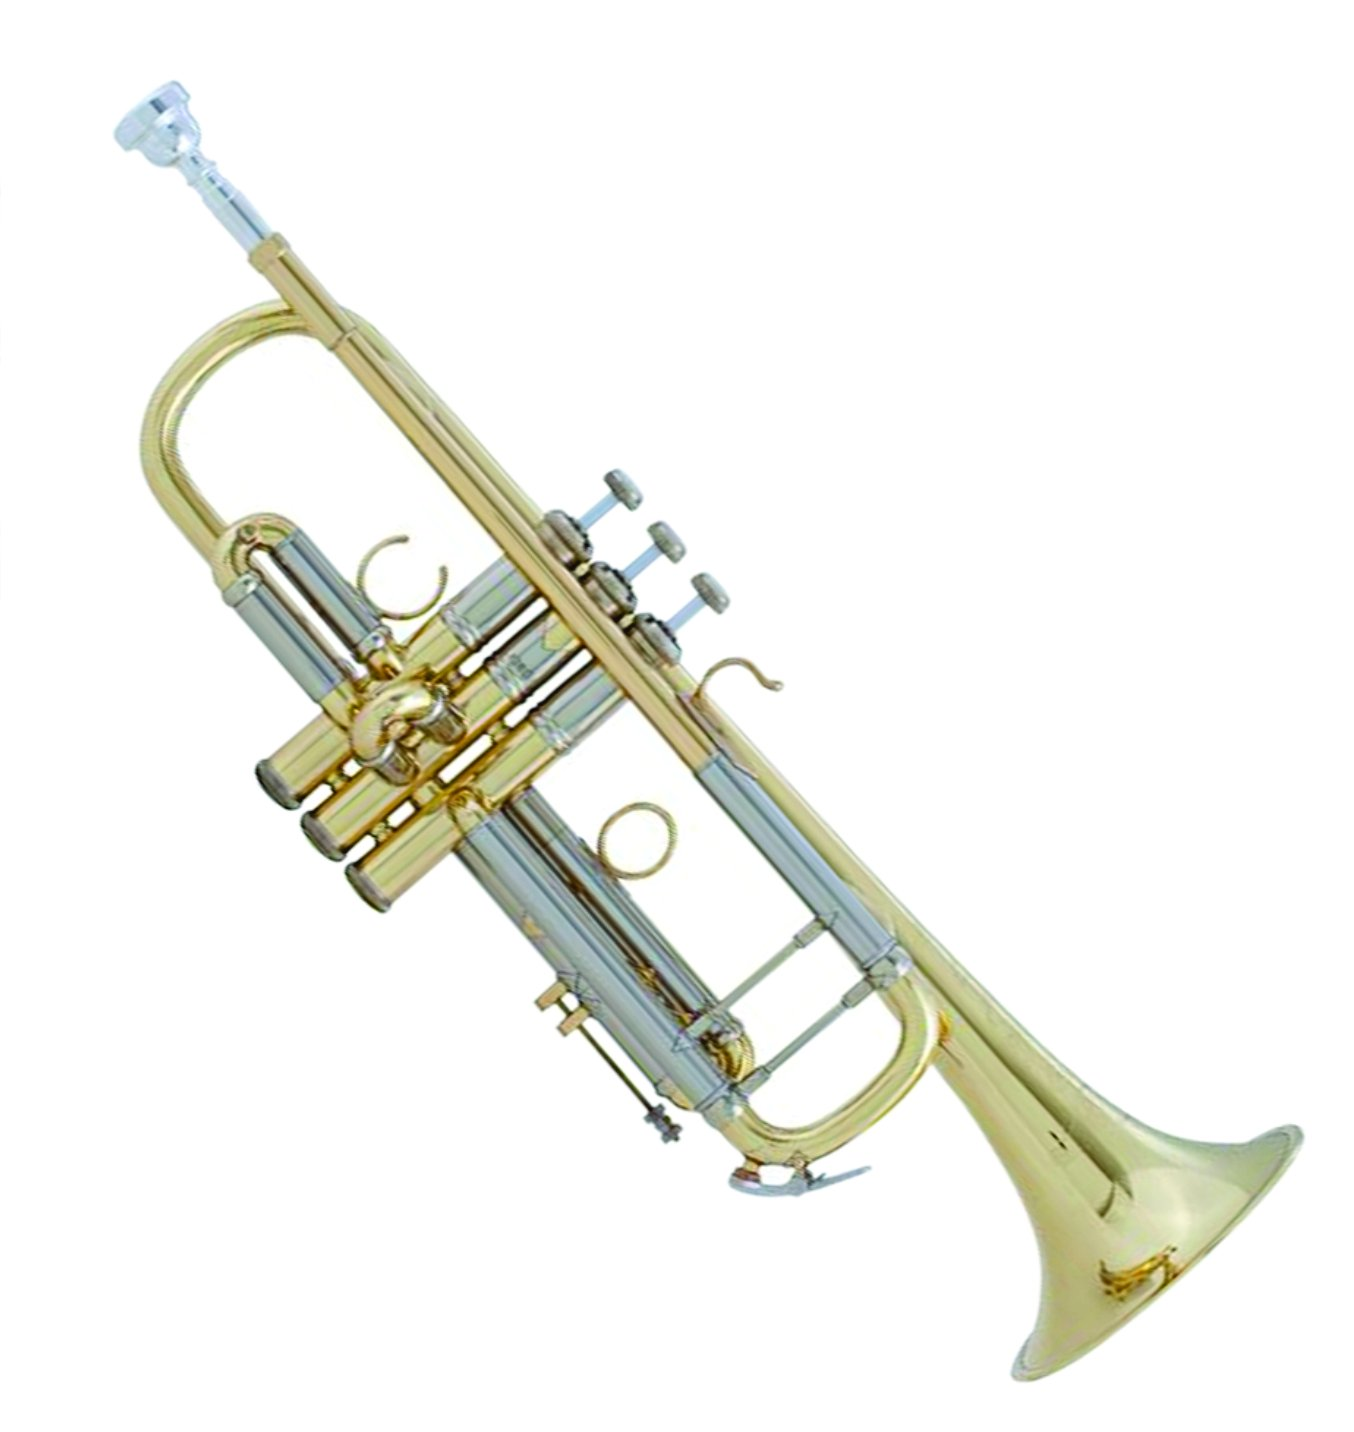 BACH AB190 Professional Bb Trumpet